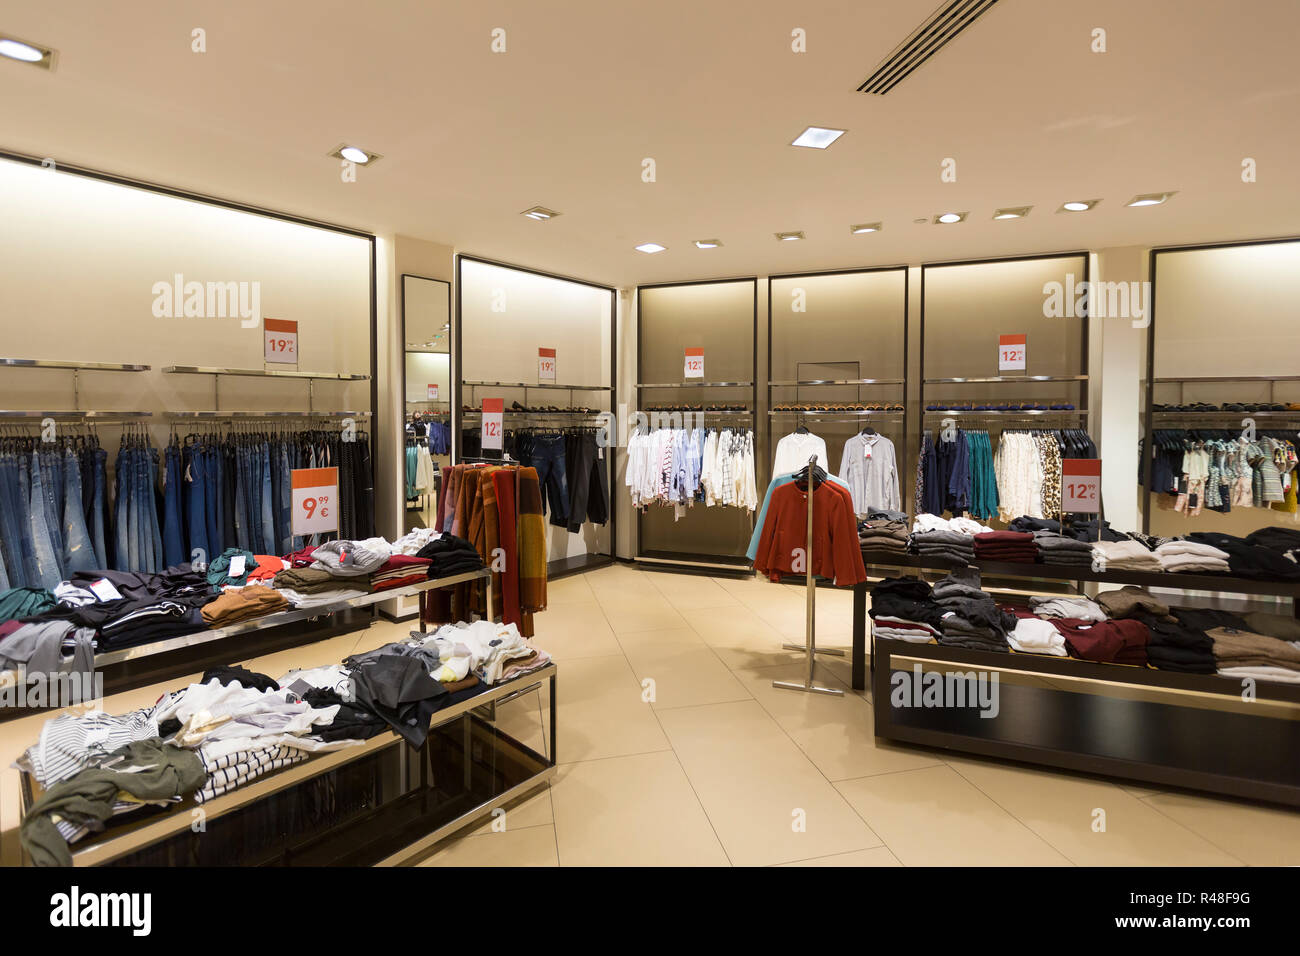 761dcaf8113 interior of women's clothes shop Stock Photo: 226381052 - Alamy